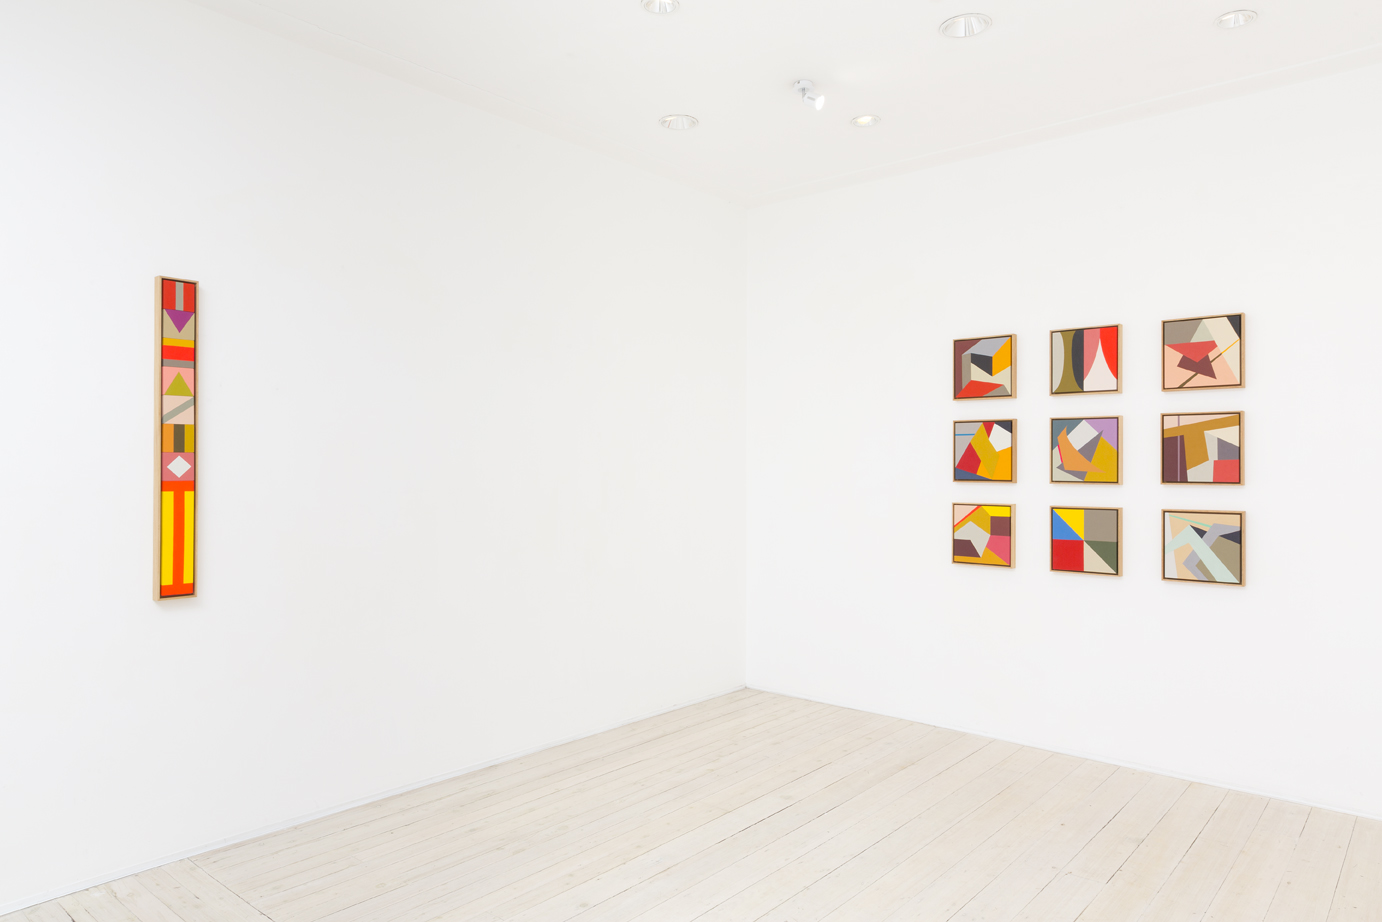 Louise Tuckwell, artist, exhibition, Gallery 9